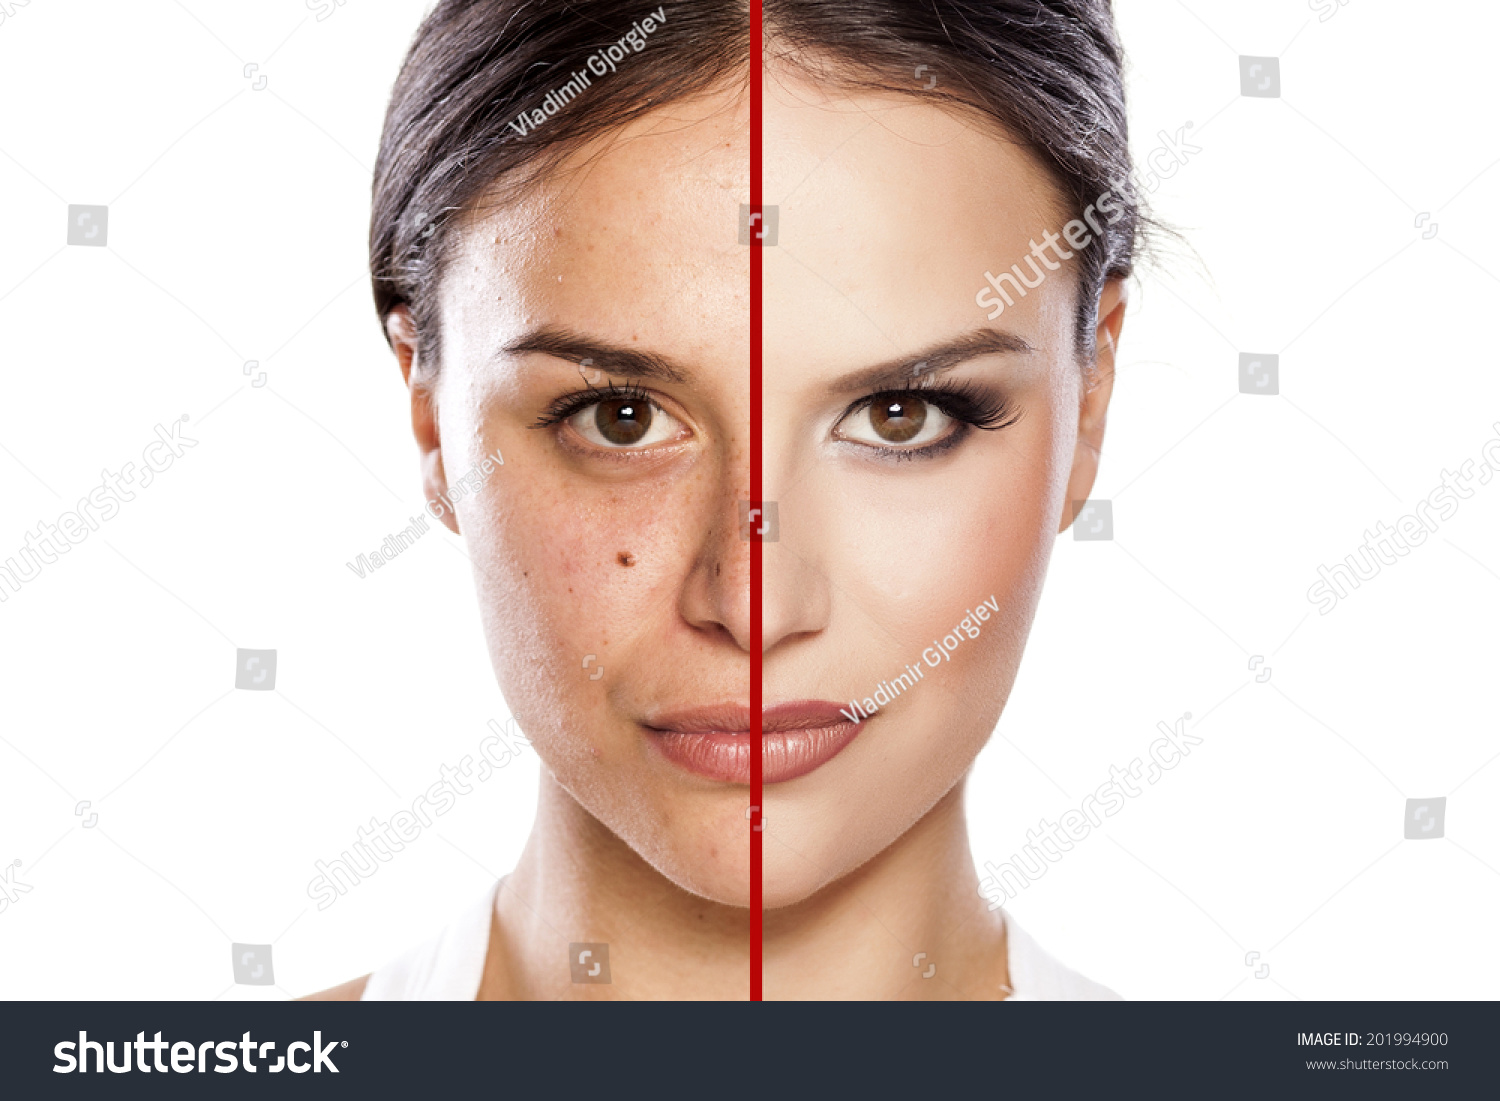 Comparison Portrait Girl Without Makeup Stock Photo 201994900 - Shutterstock